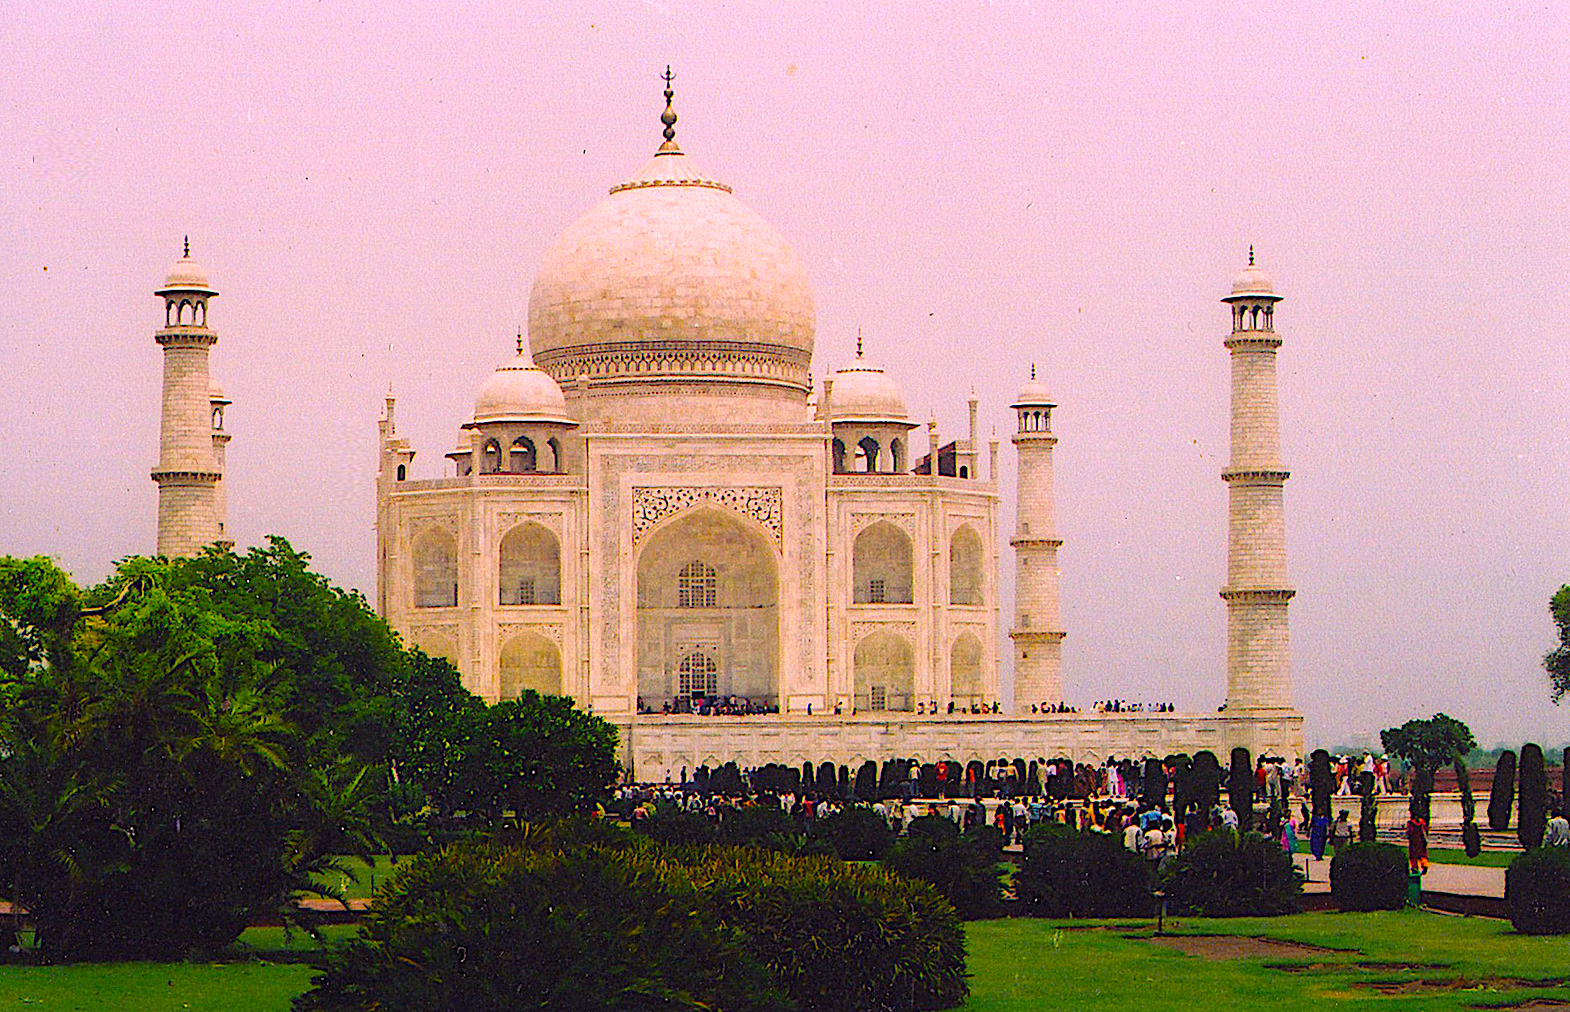 The Taj Mahal, which honors love for a wife, took 22 years & 1,000 elephants to complete